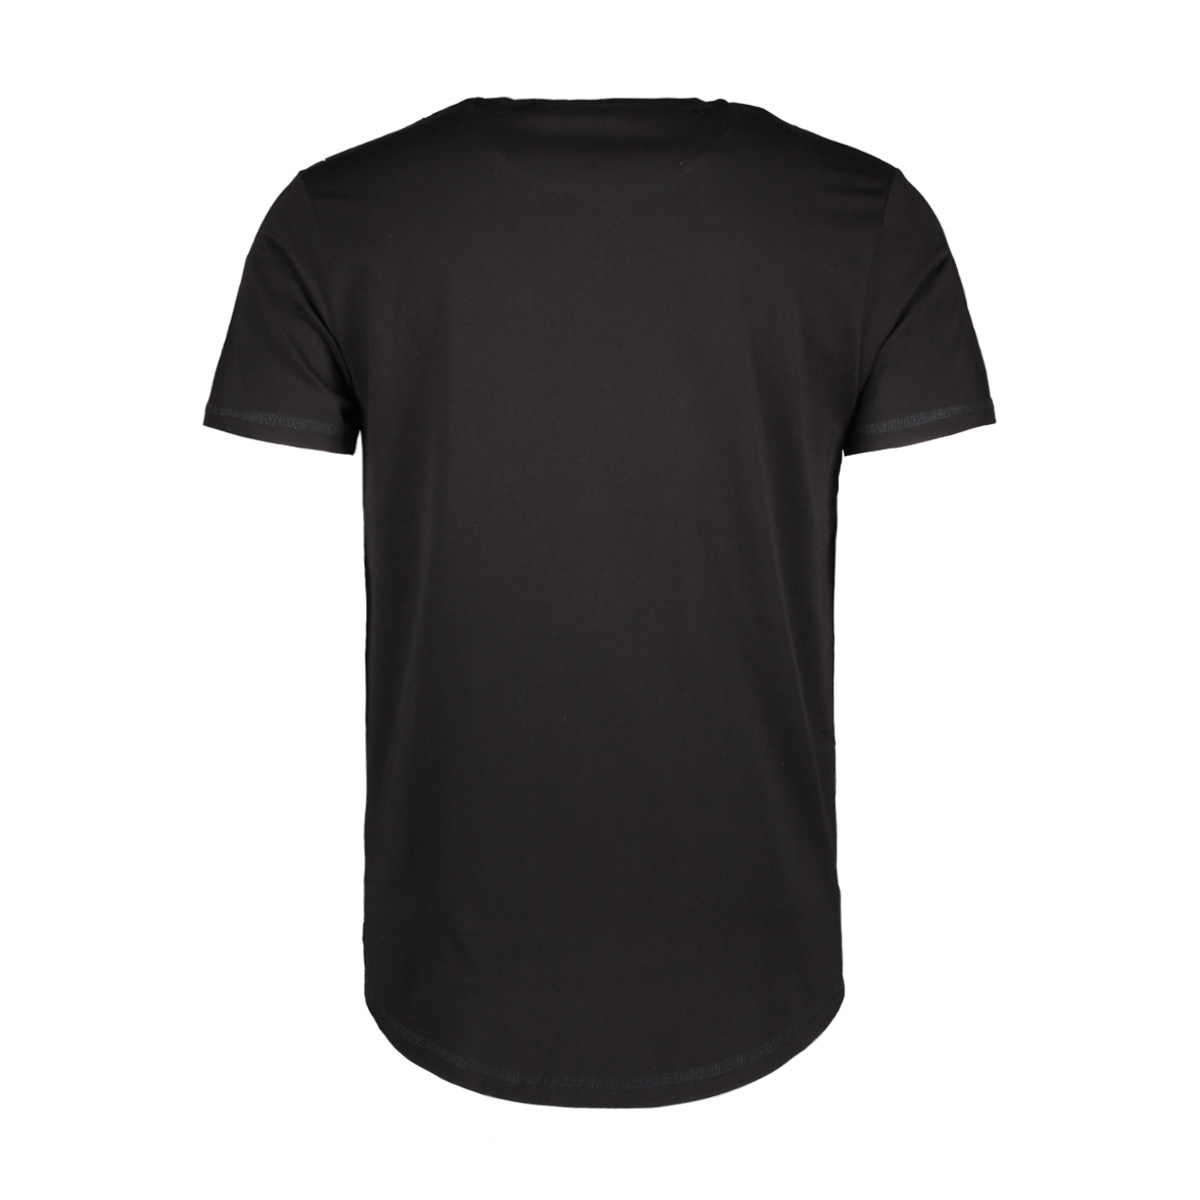 13860 gabbiano t-shirt black